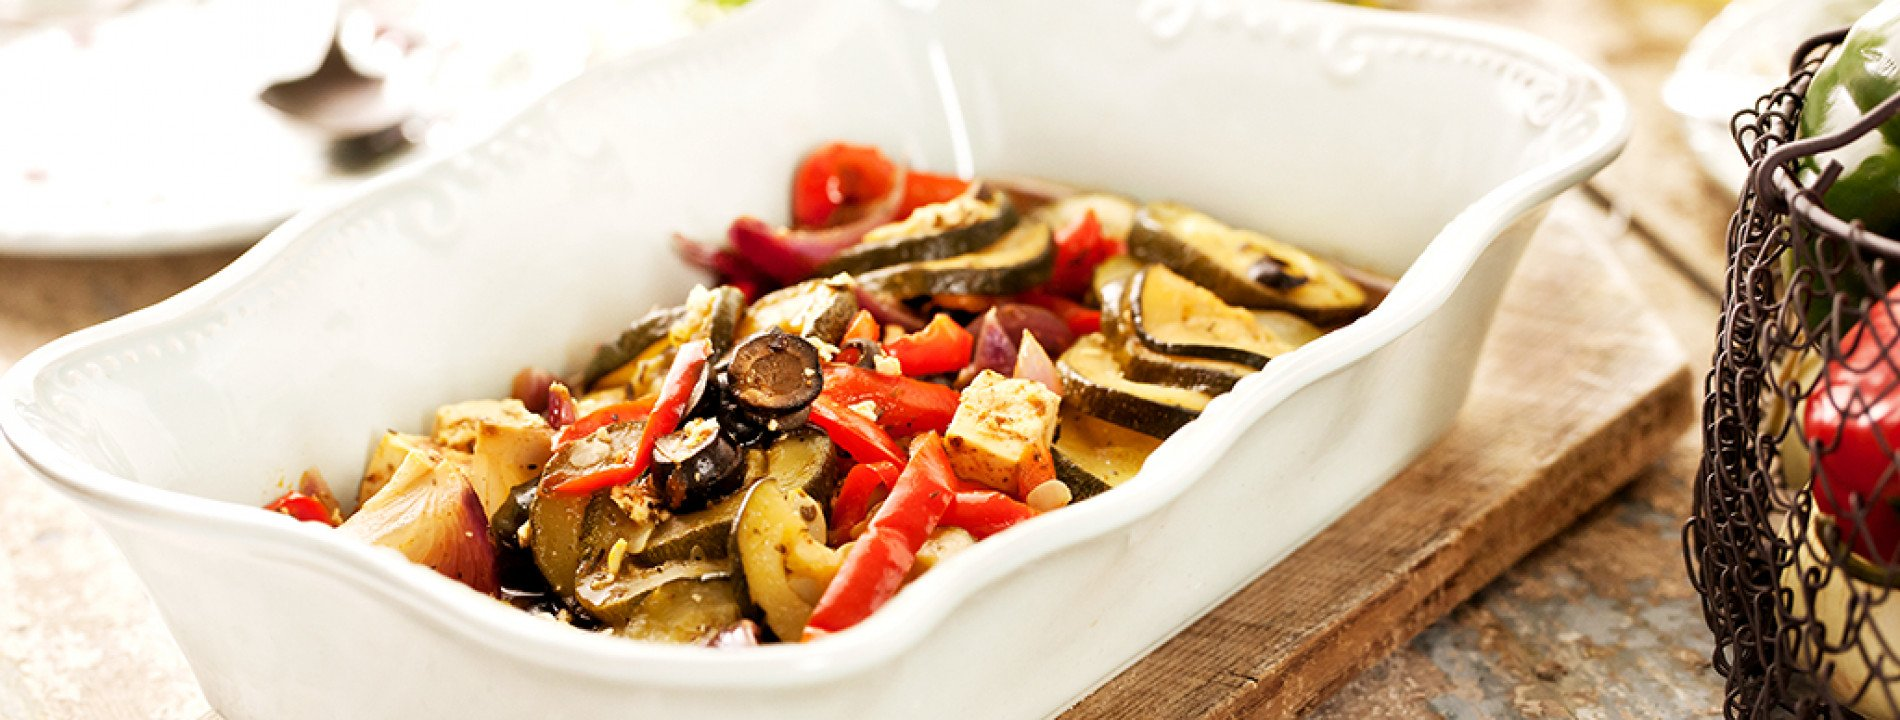 Vegetables and Feta Cheese in the Oven